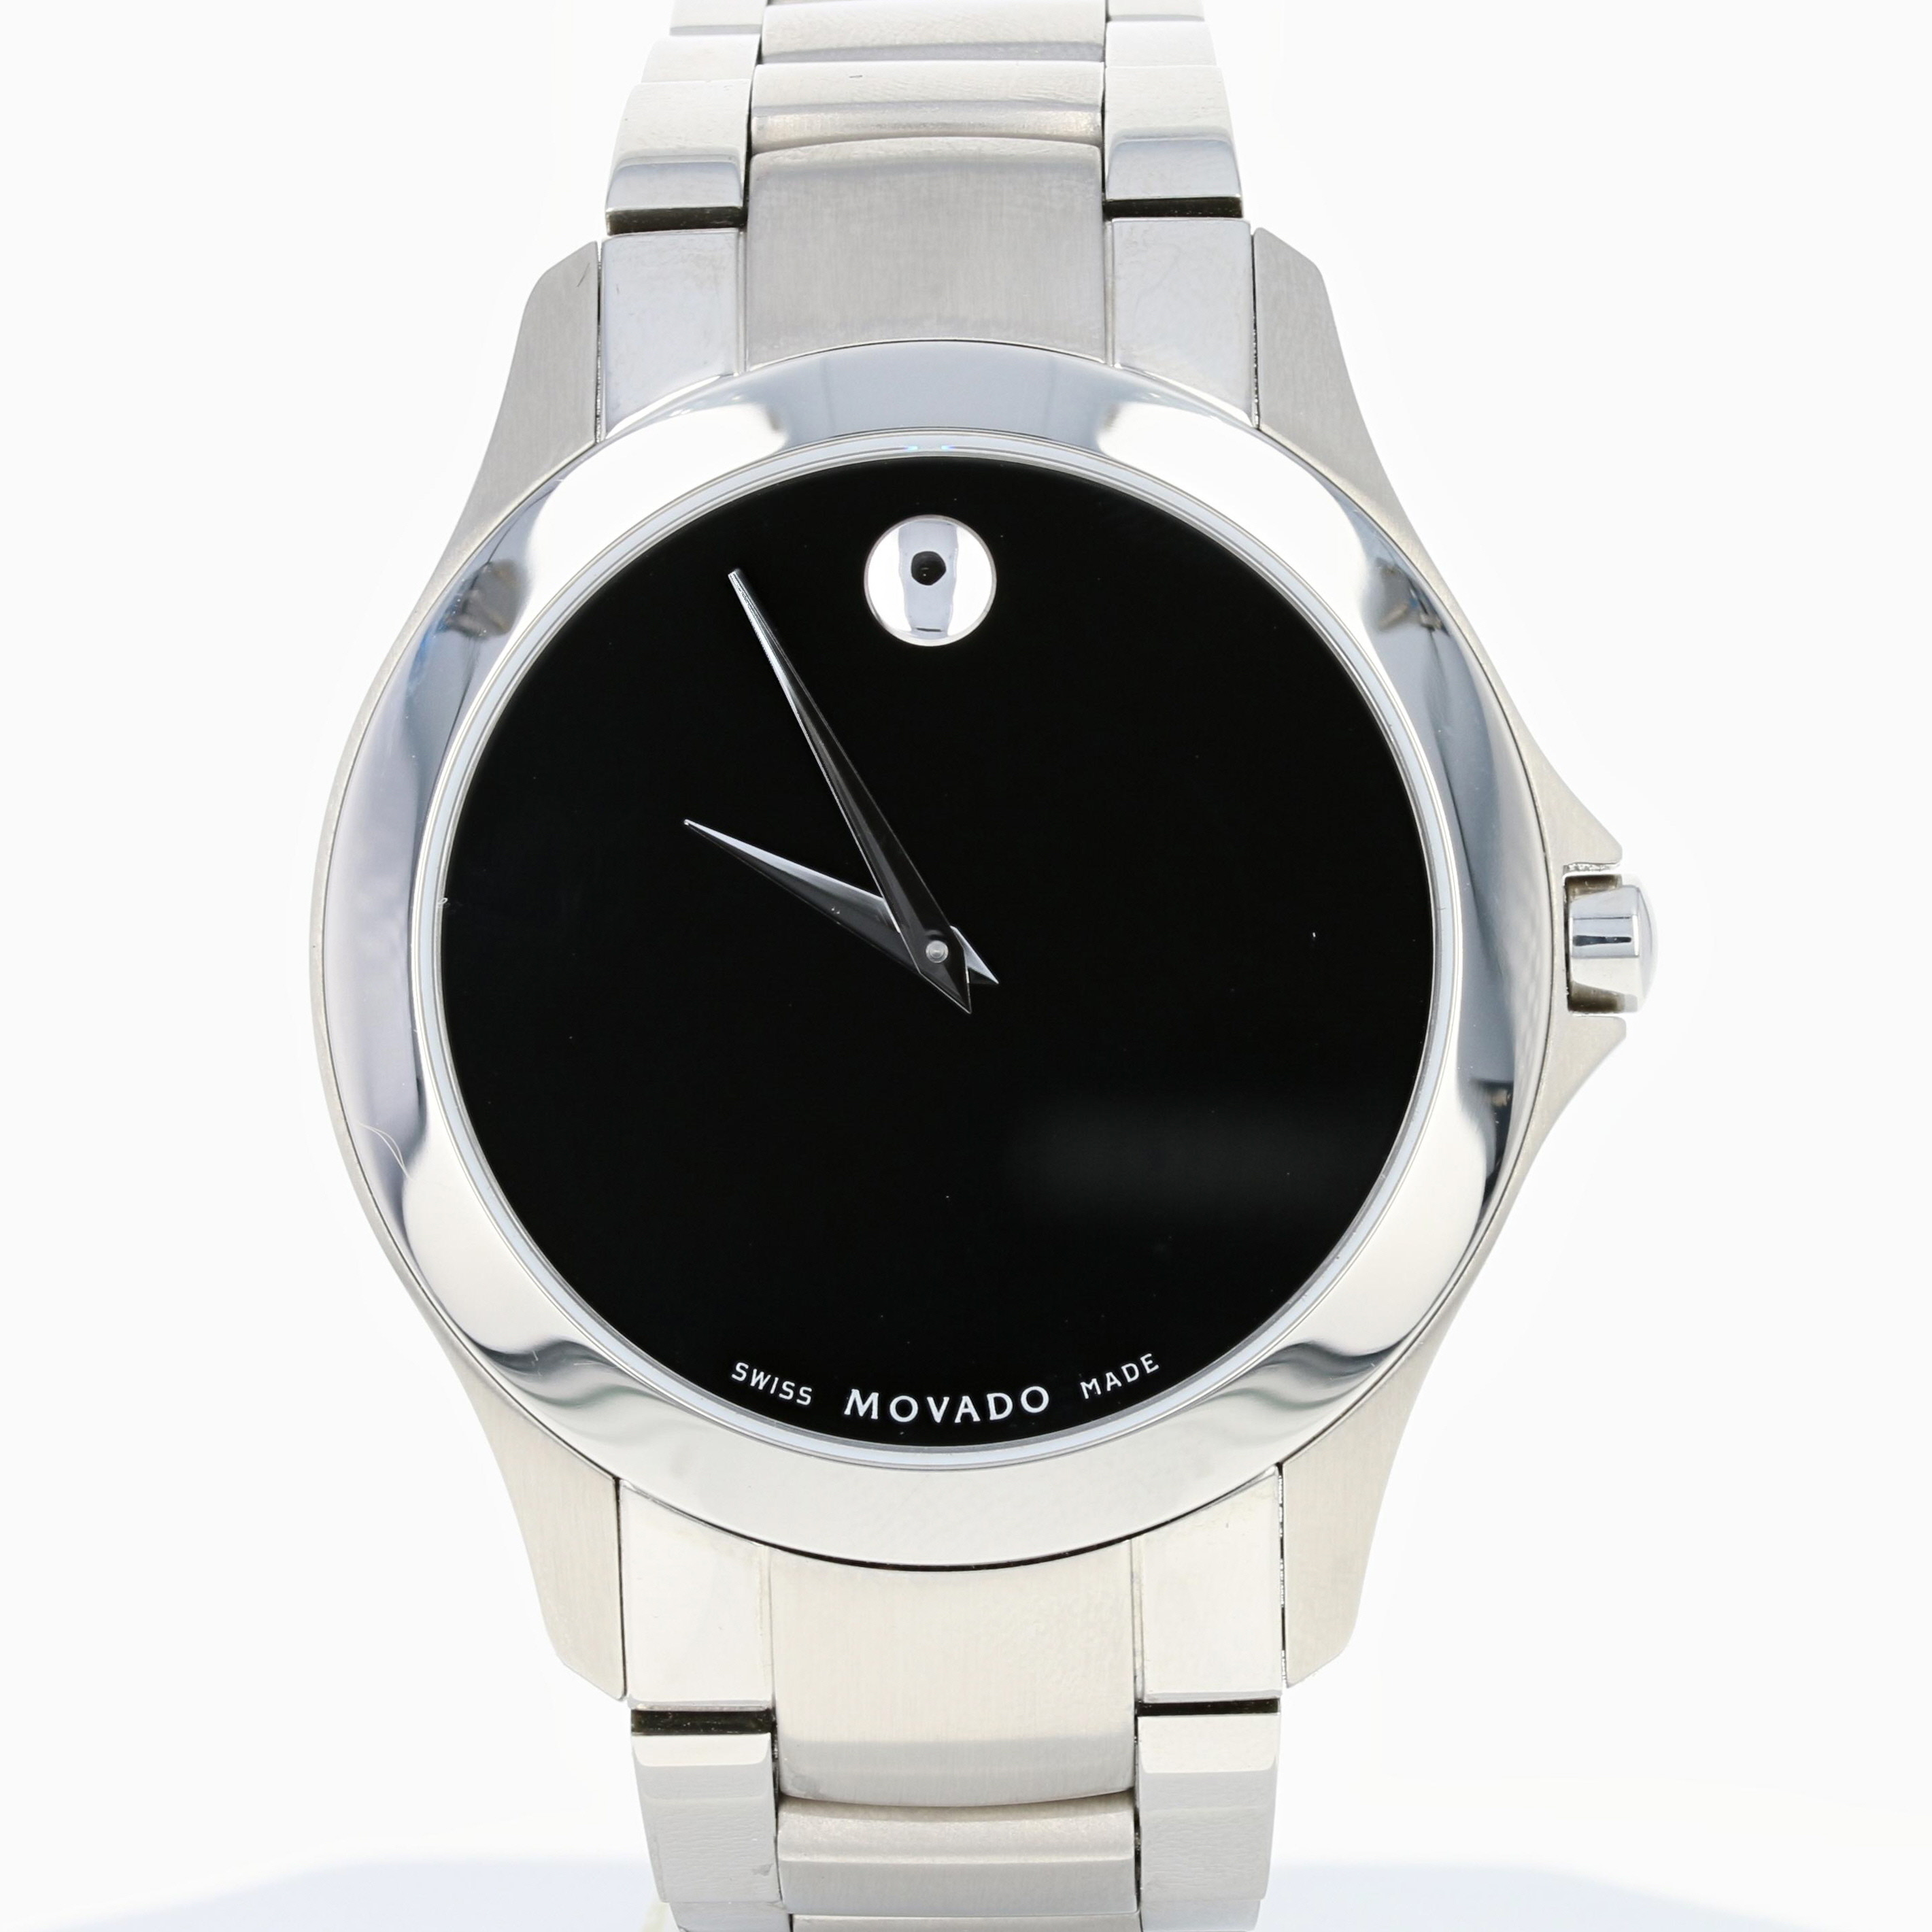 watches esq from movado gemelli jewelers